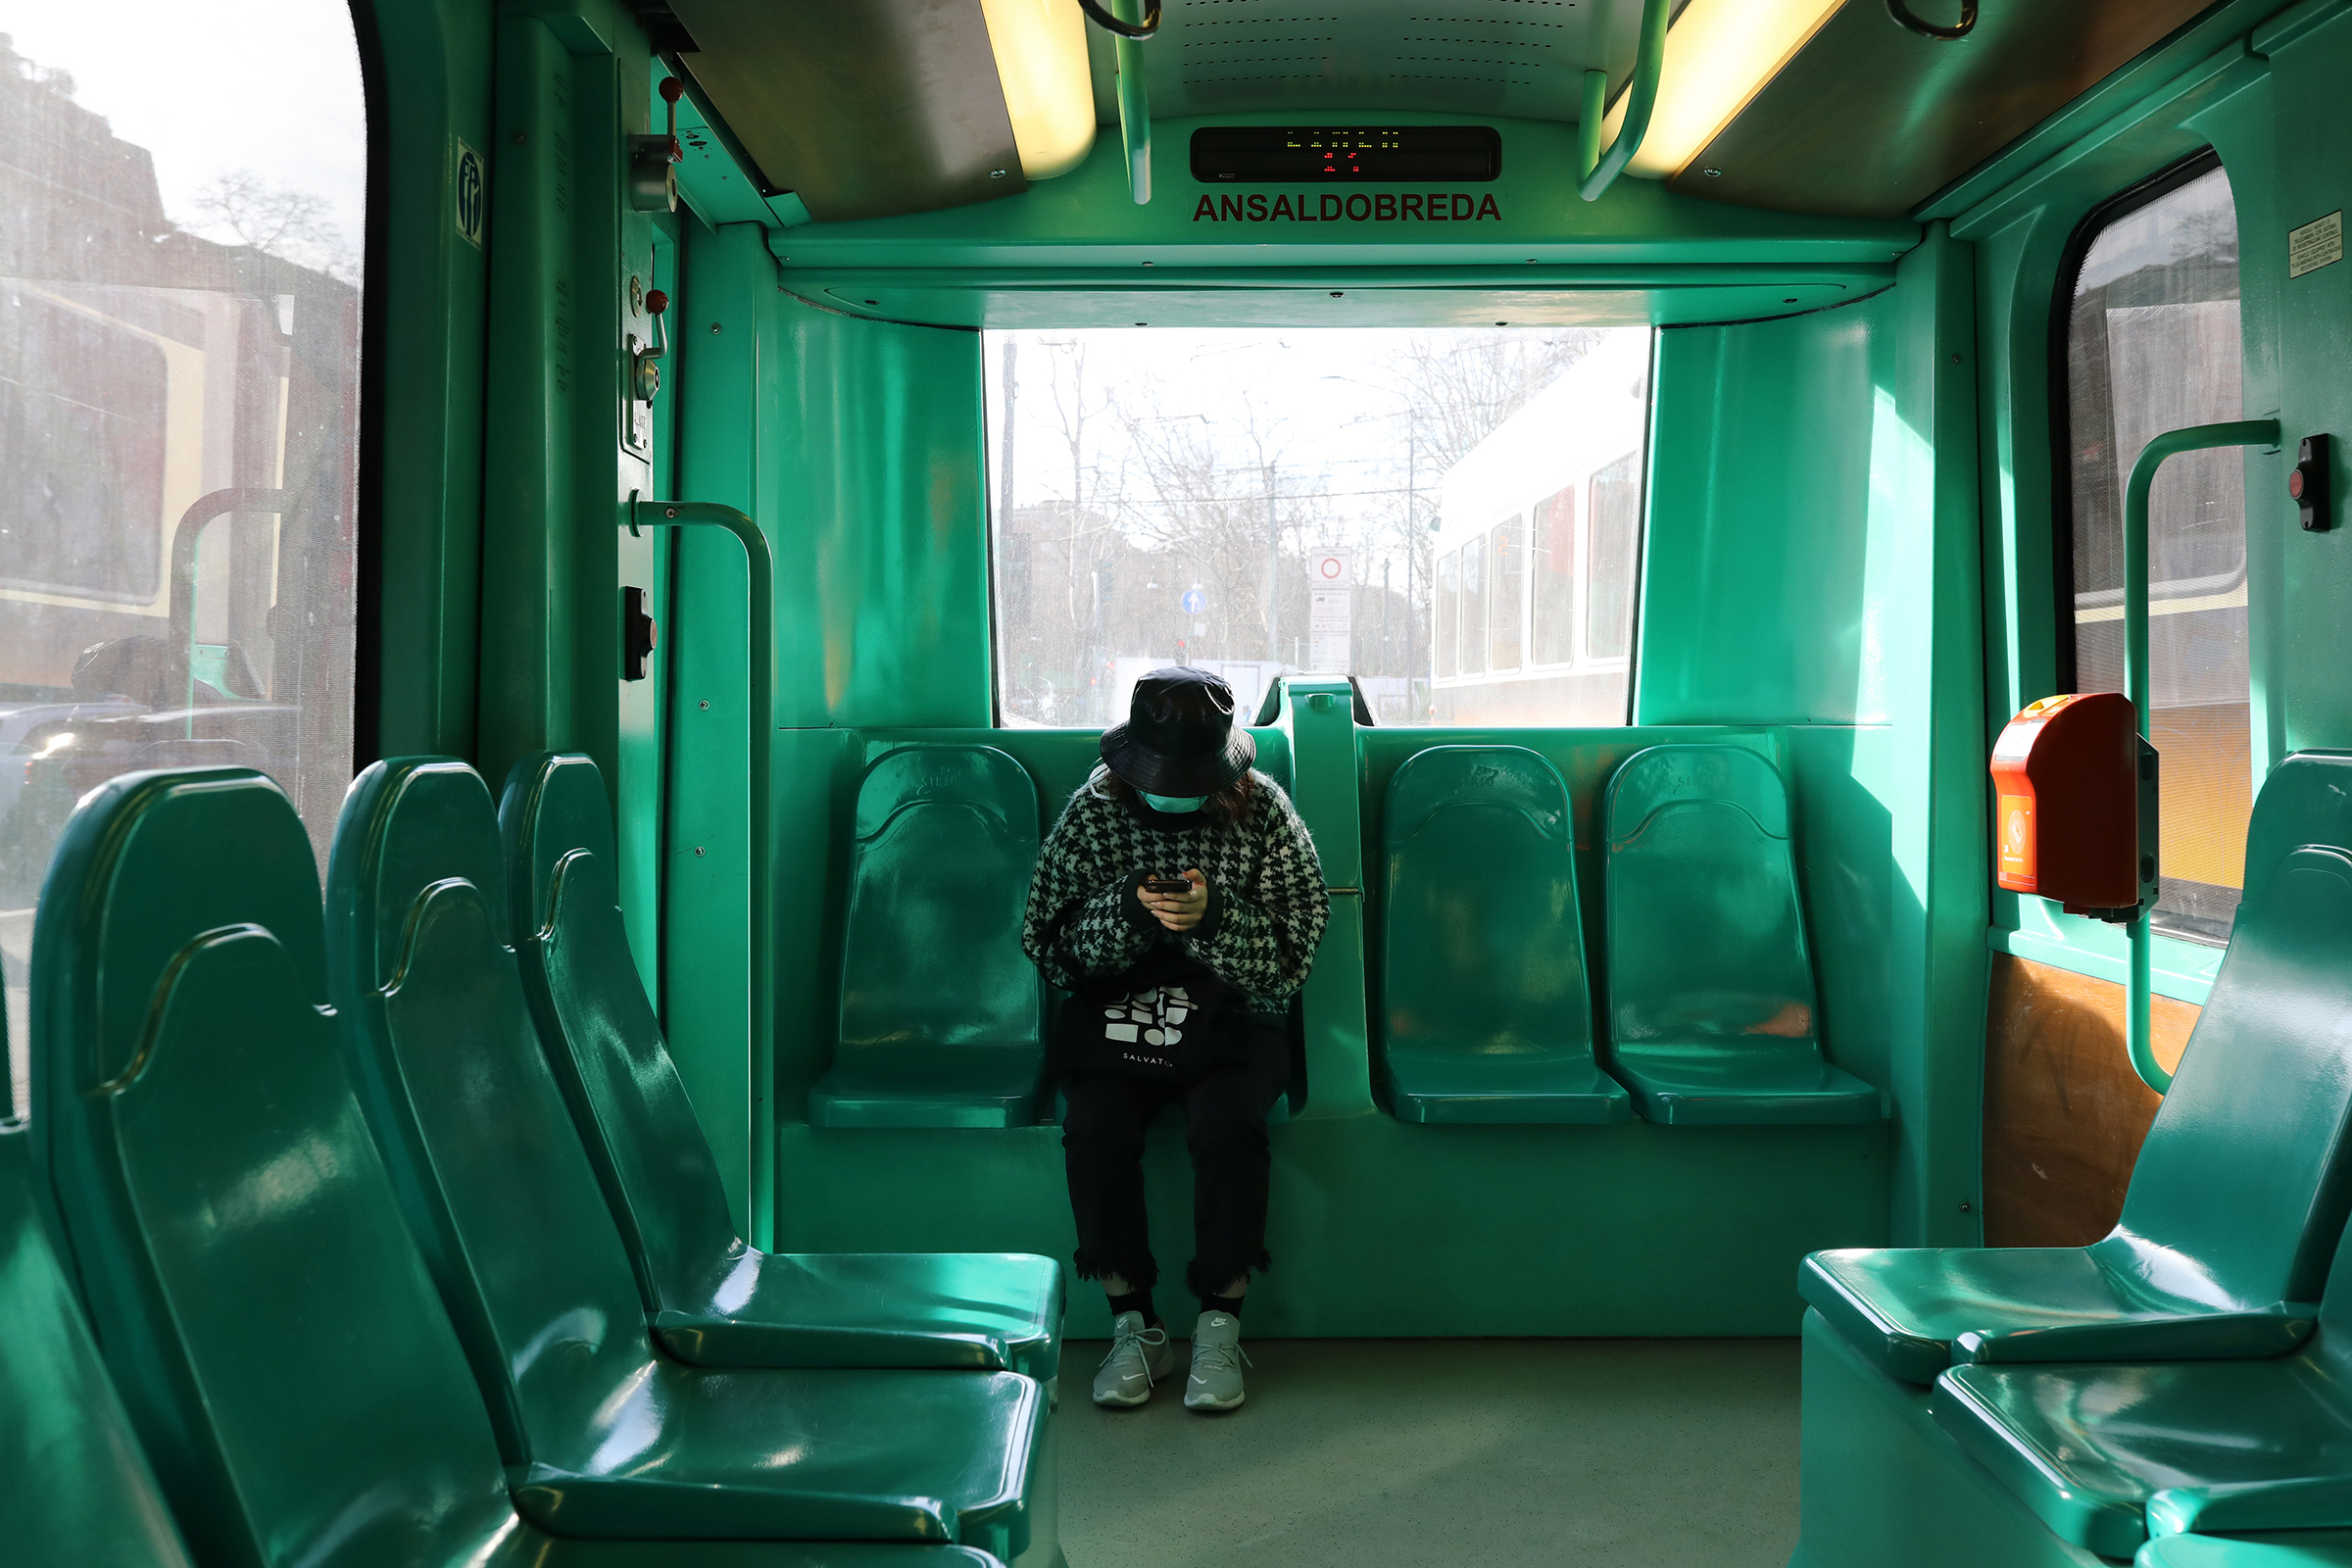 A woman wearing a protective mask is seen taking public transportation on Feb. 27 in Milan, Italy.